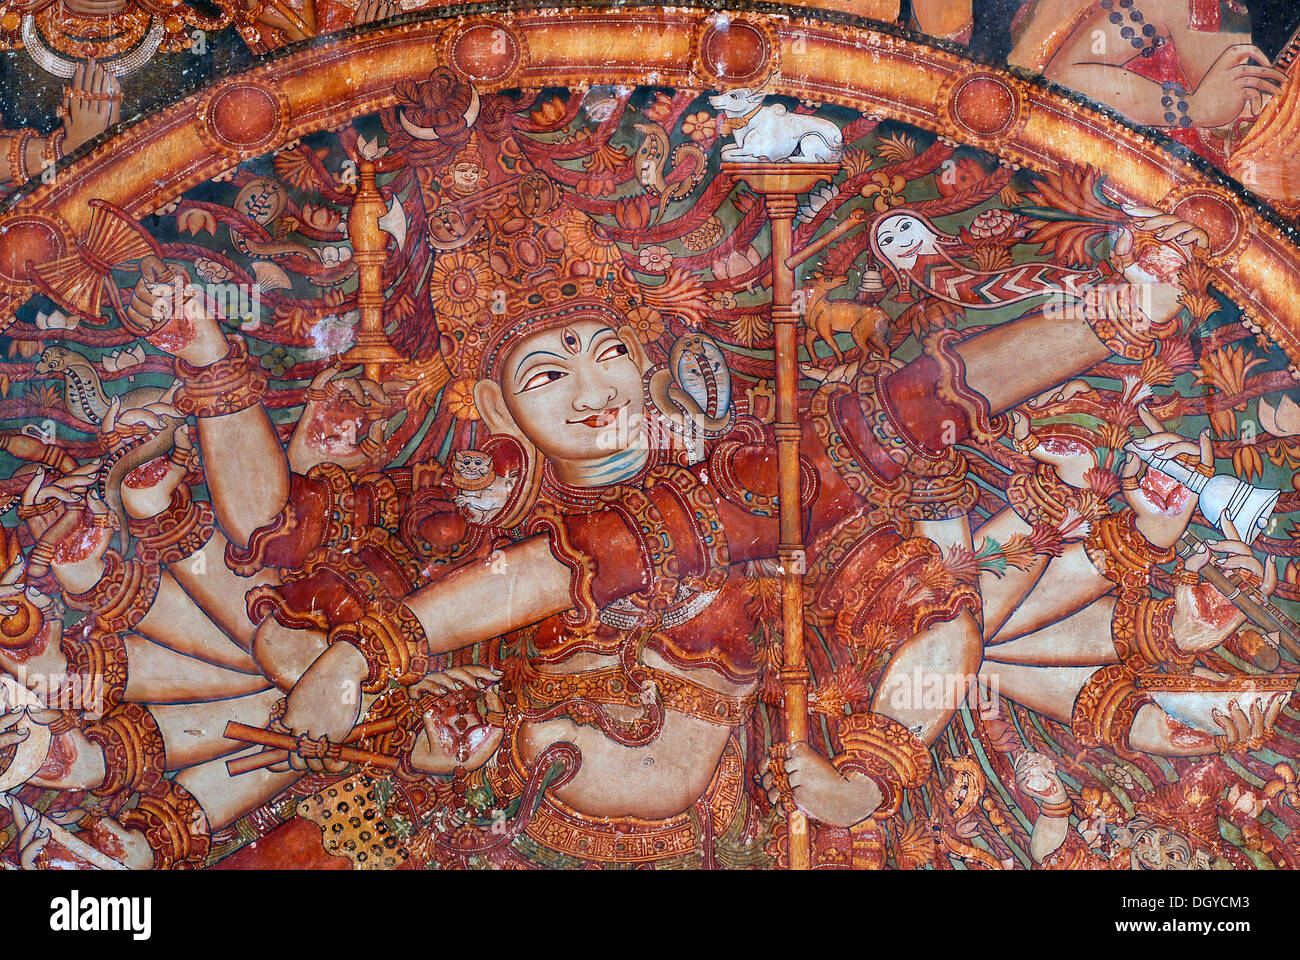 Fresco of the god Shiva, Temple of Ettumanur, Kerala, South India, India, Asia - Stock Image